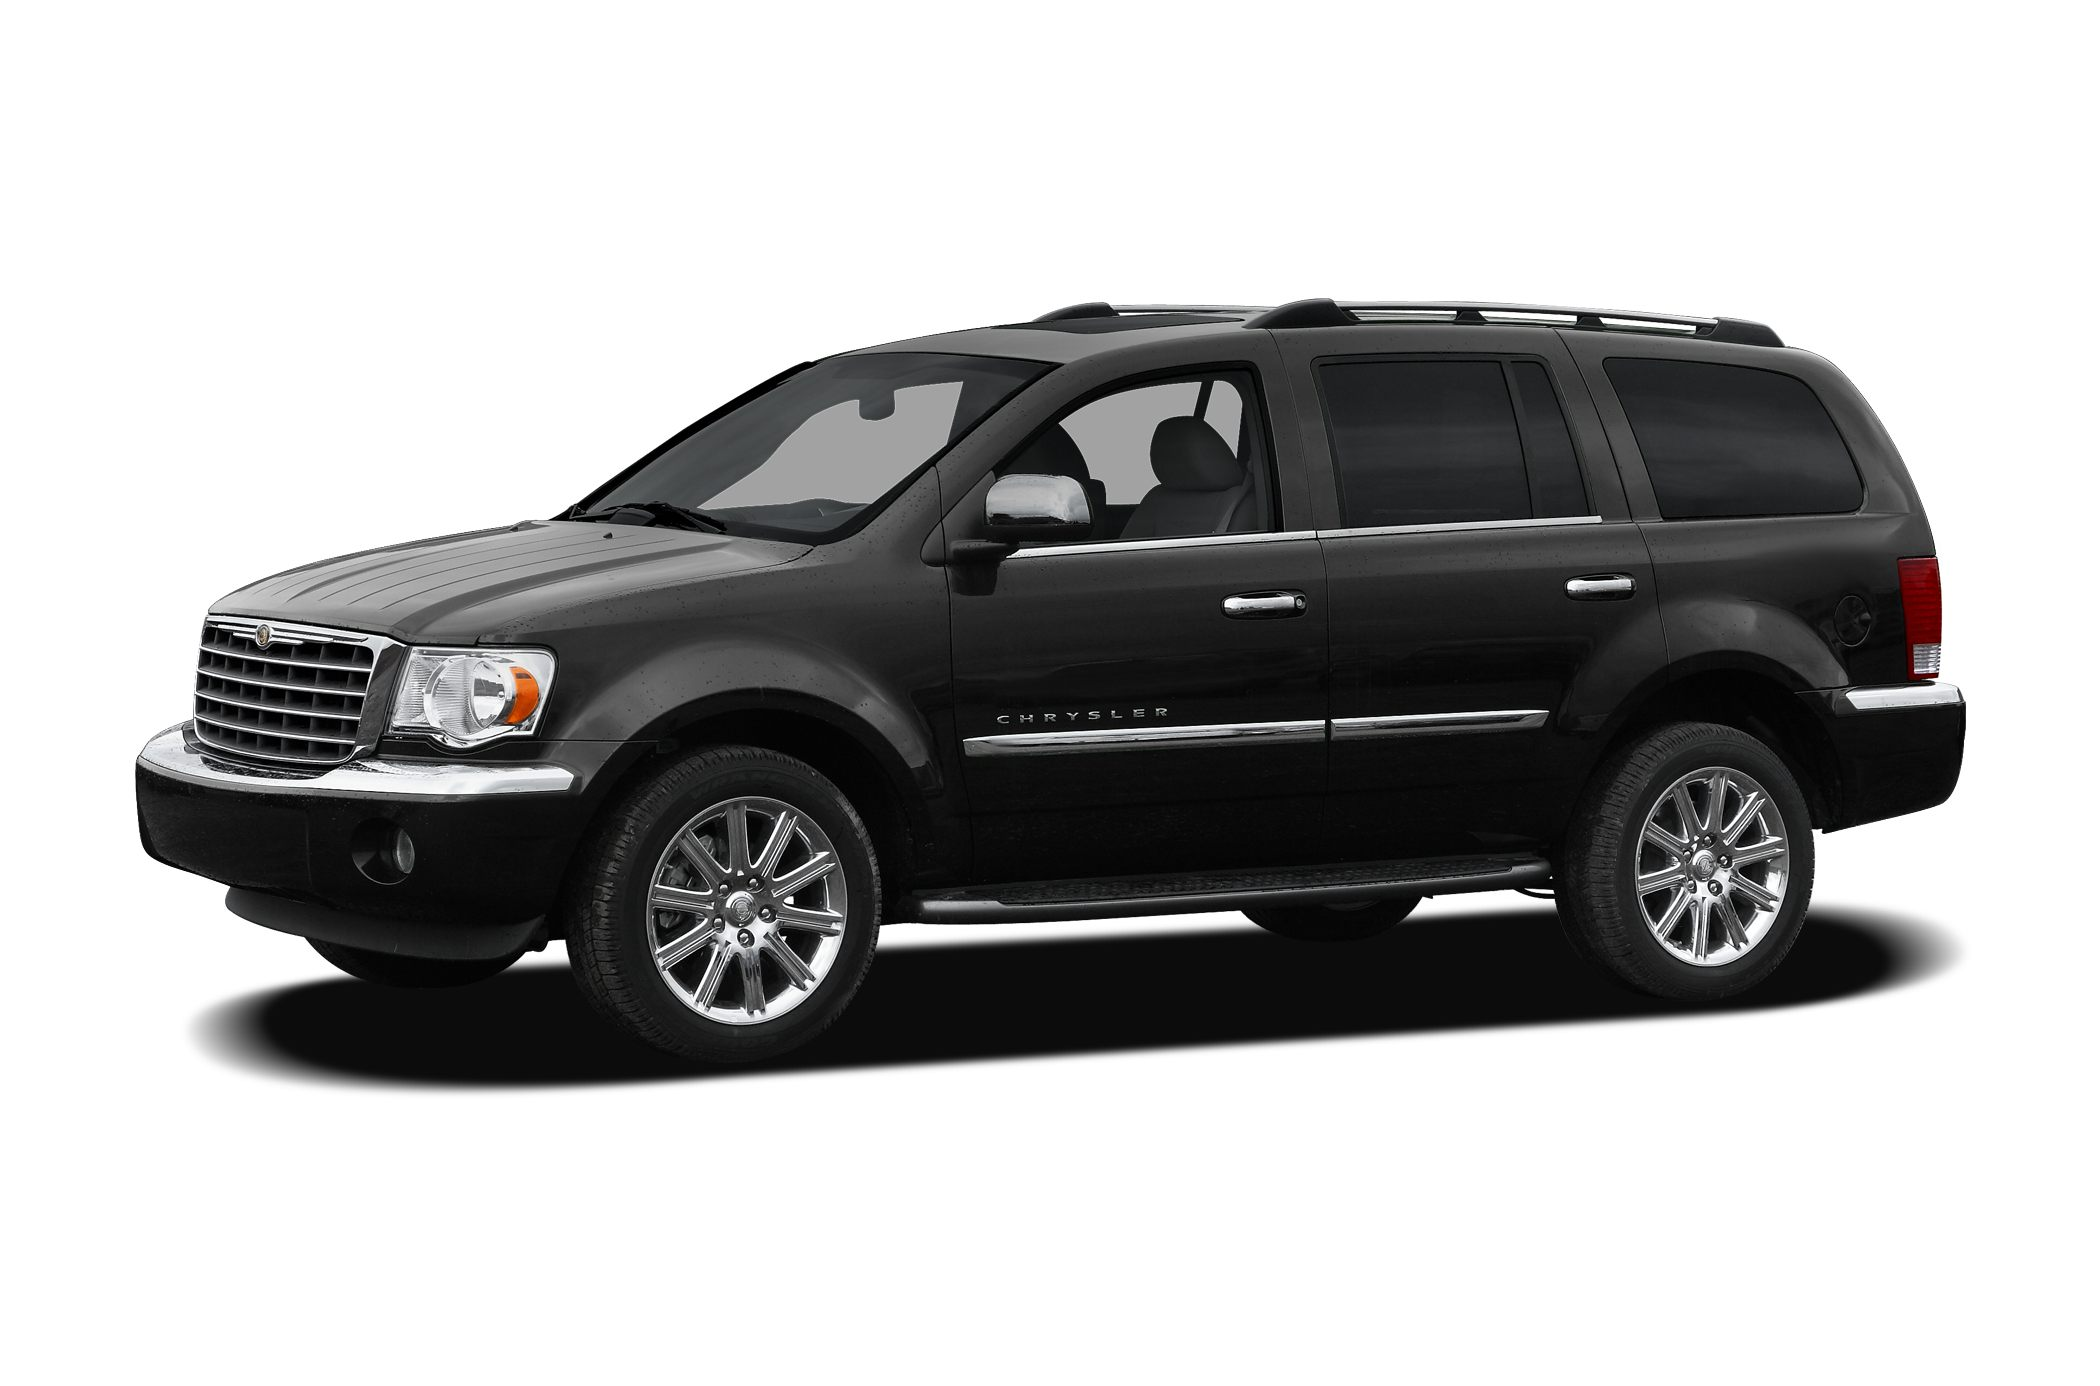 2008 Chrysler Aspen Limited SUV for sale in Traverse City for $14,989 with 84,685 miles